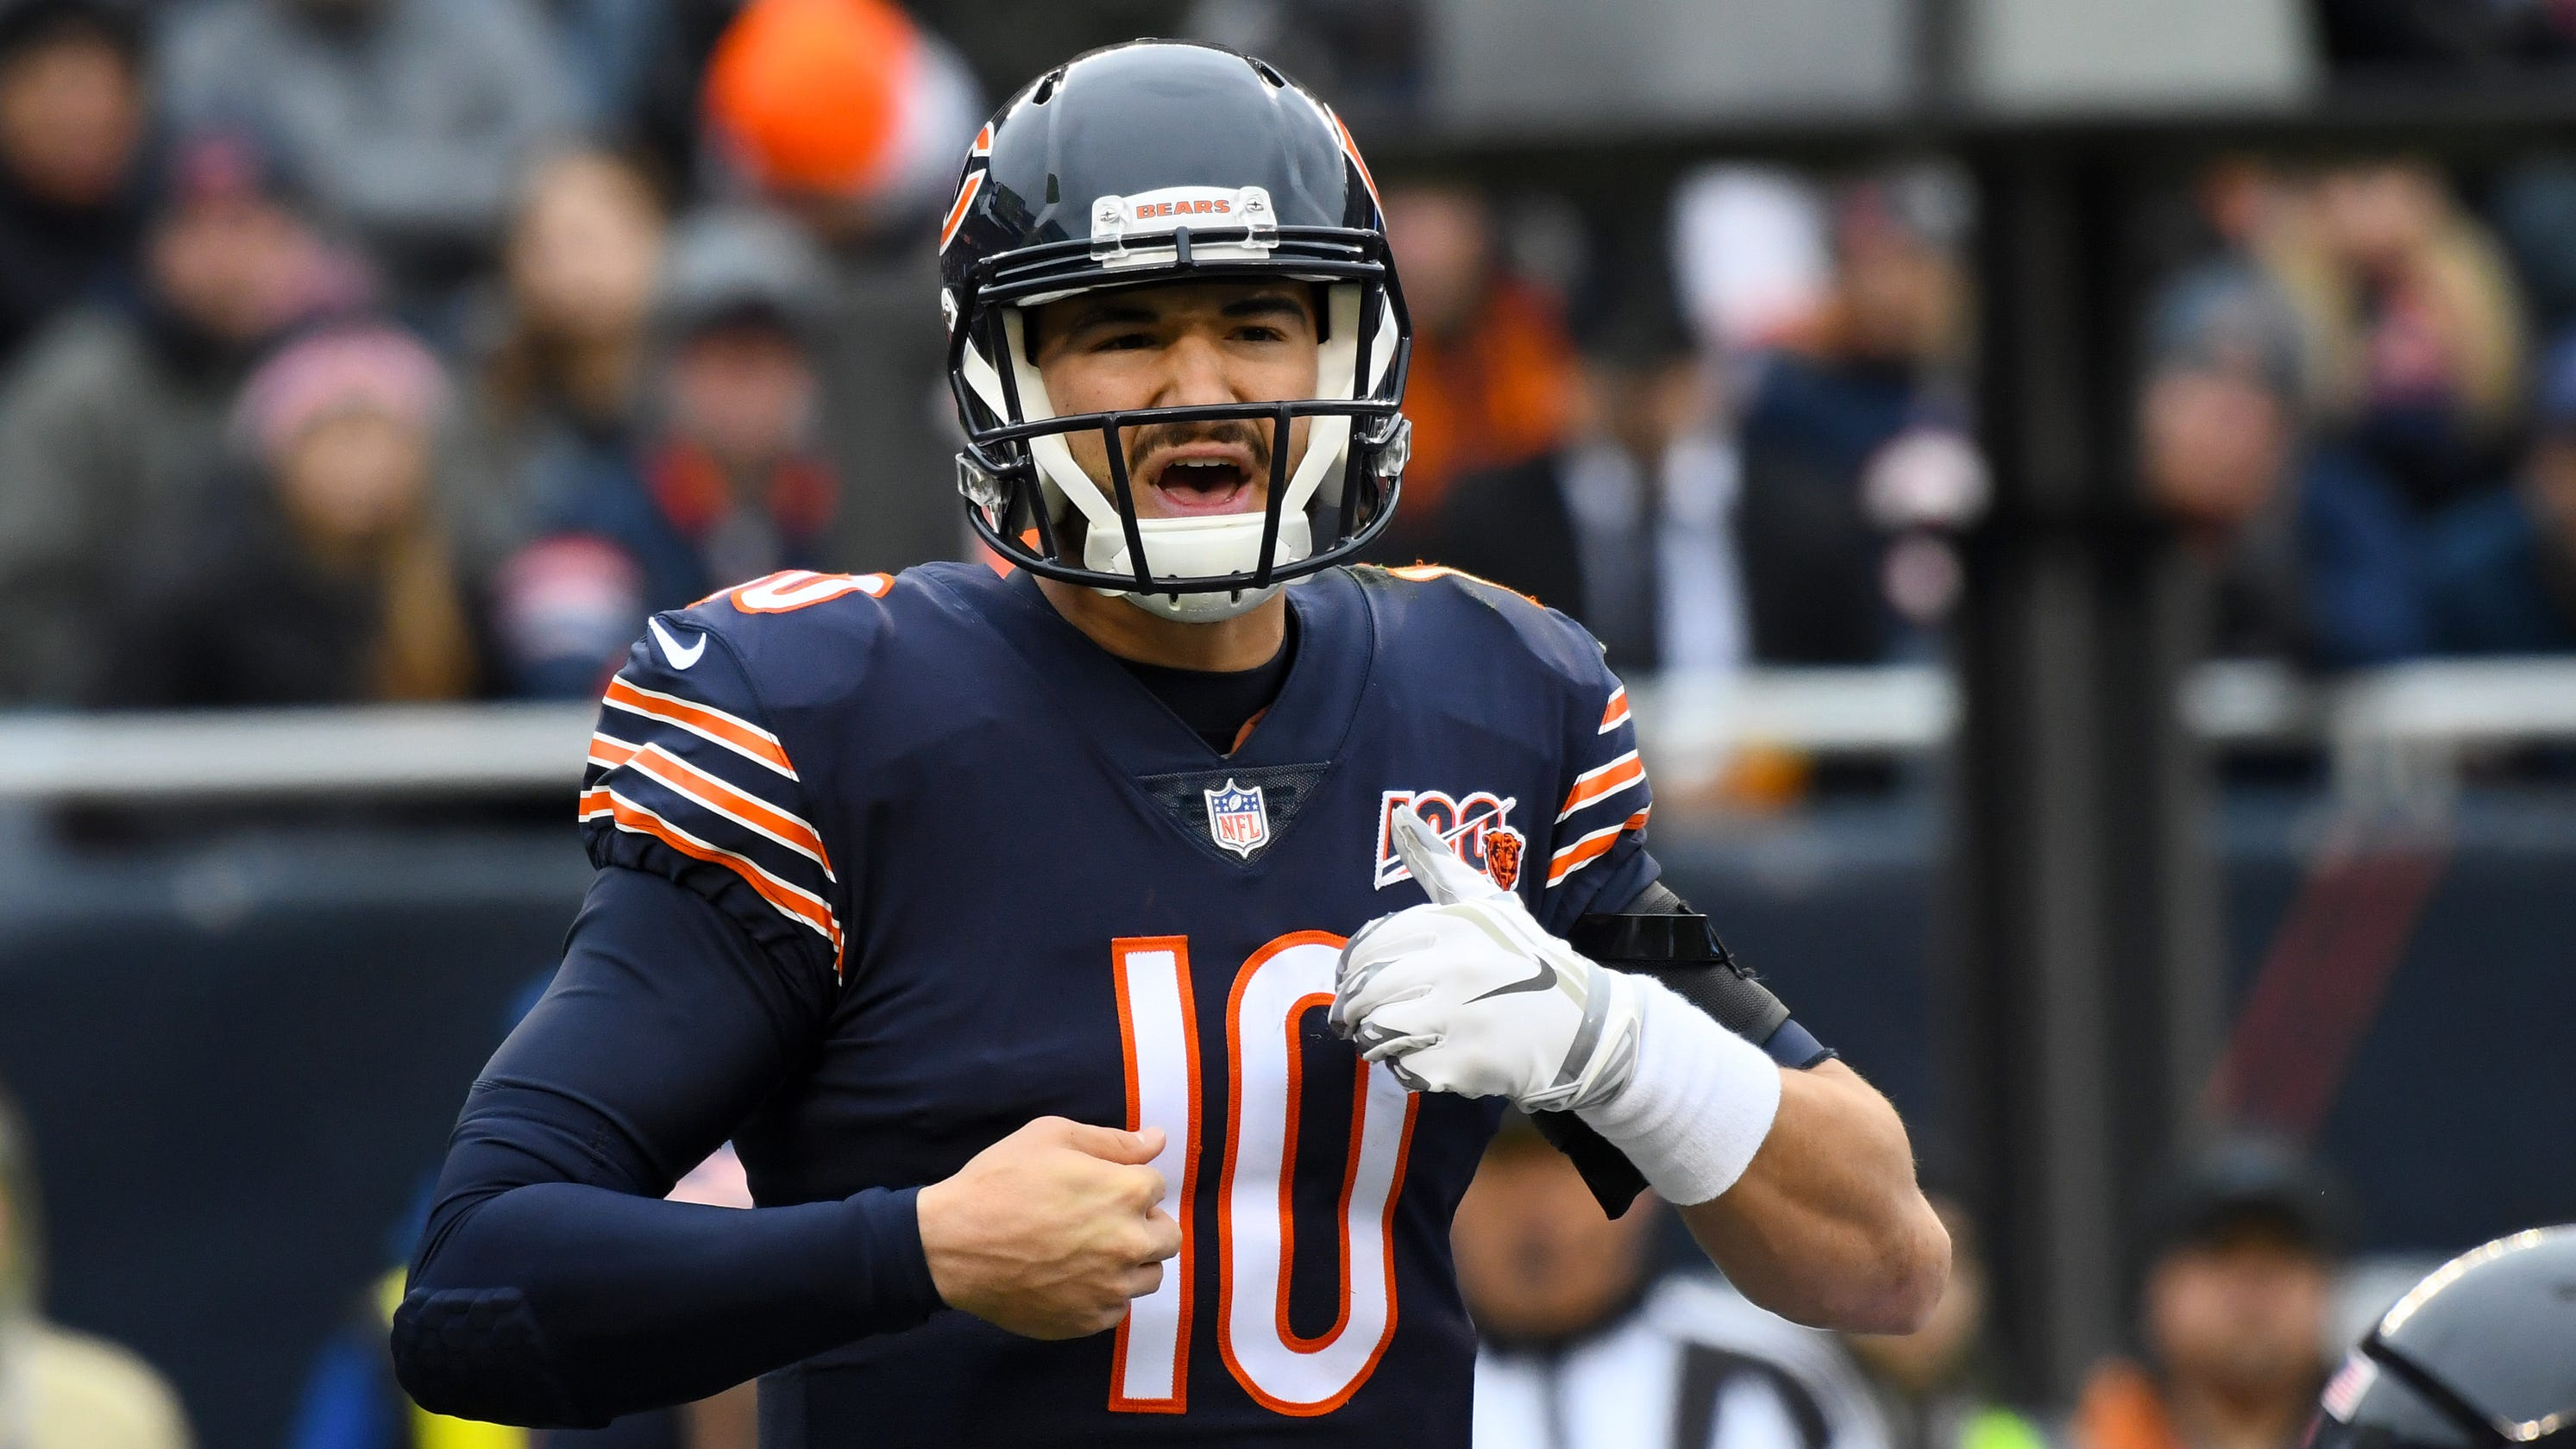 Reports: Chicago Bears decline QB Mitchell Trubisky's fifth-year option